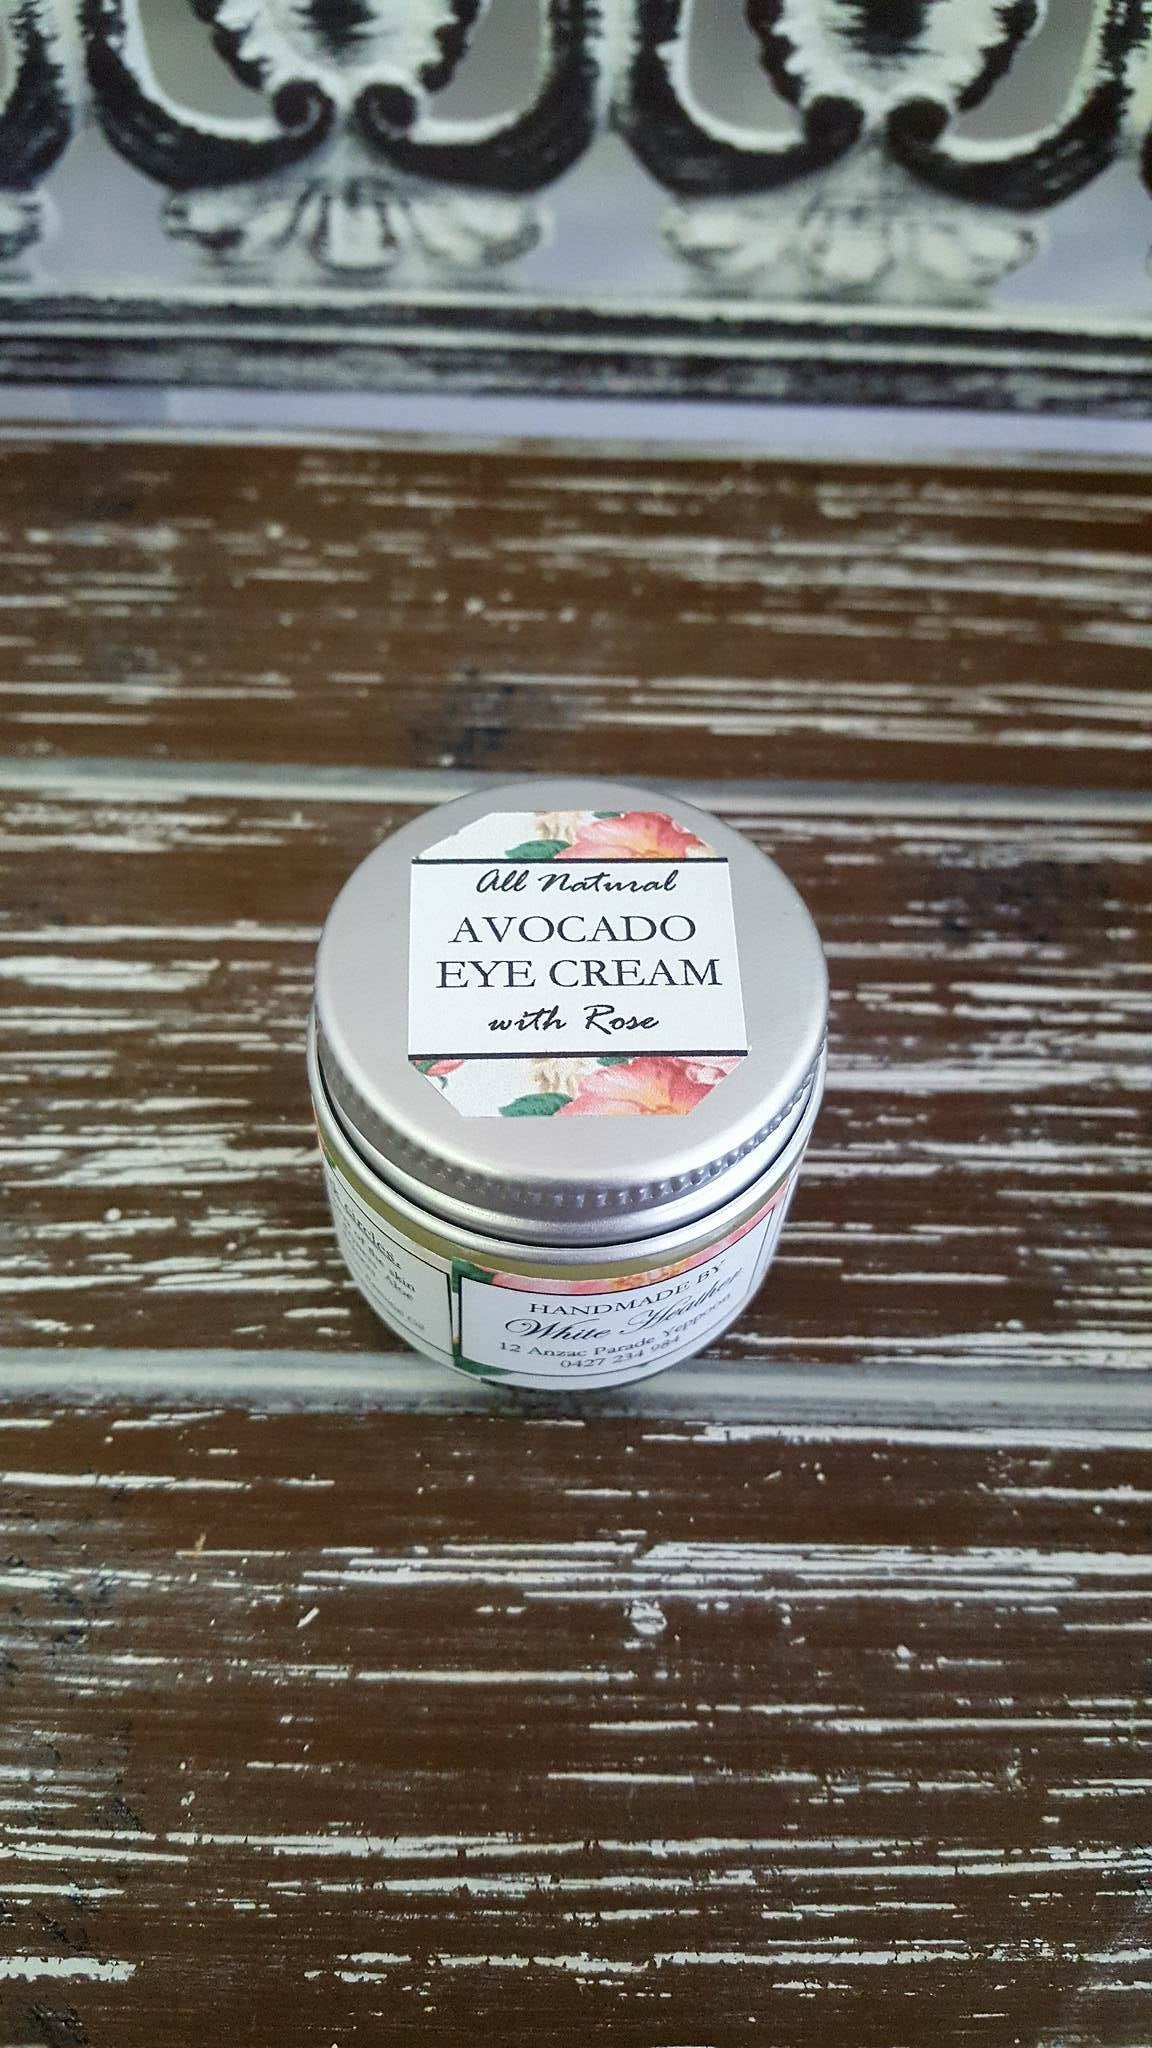 Image of Rose Avocado Eye Cream